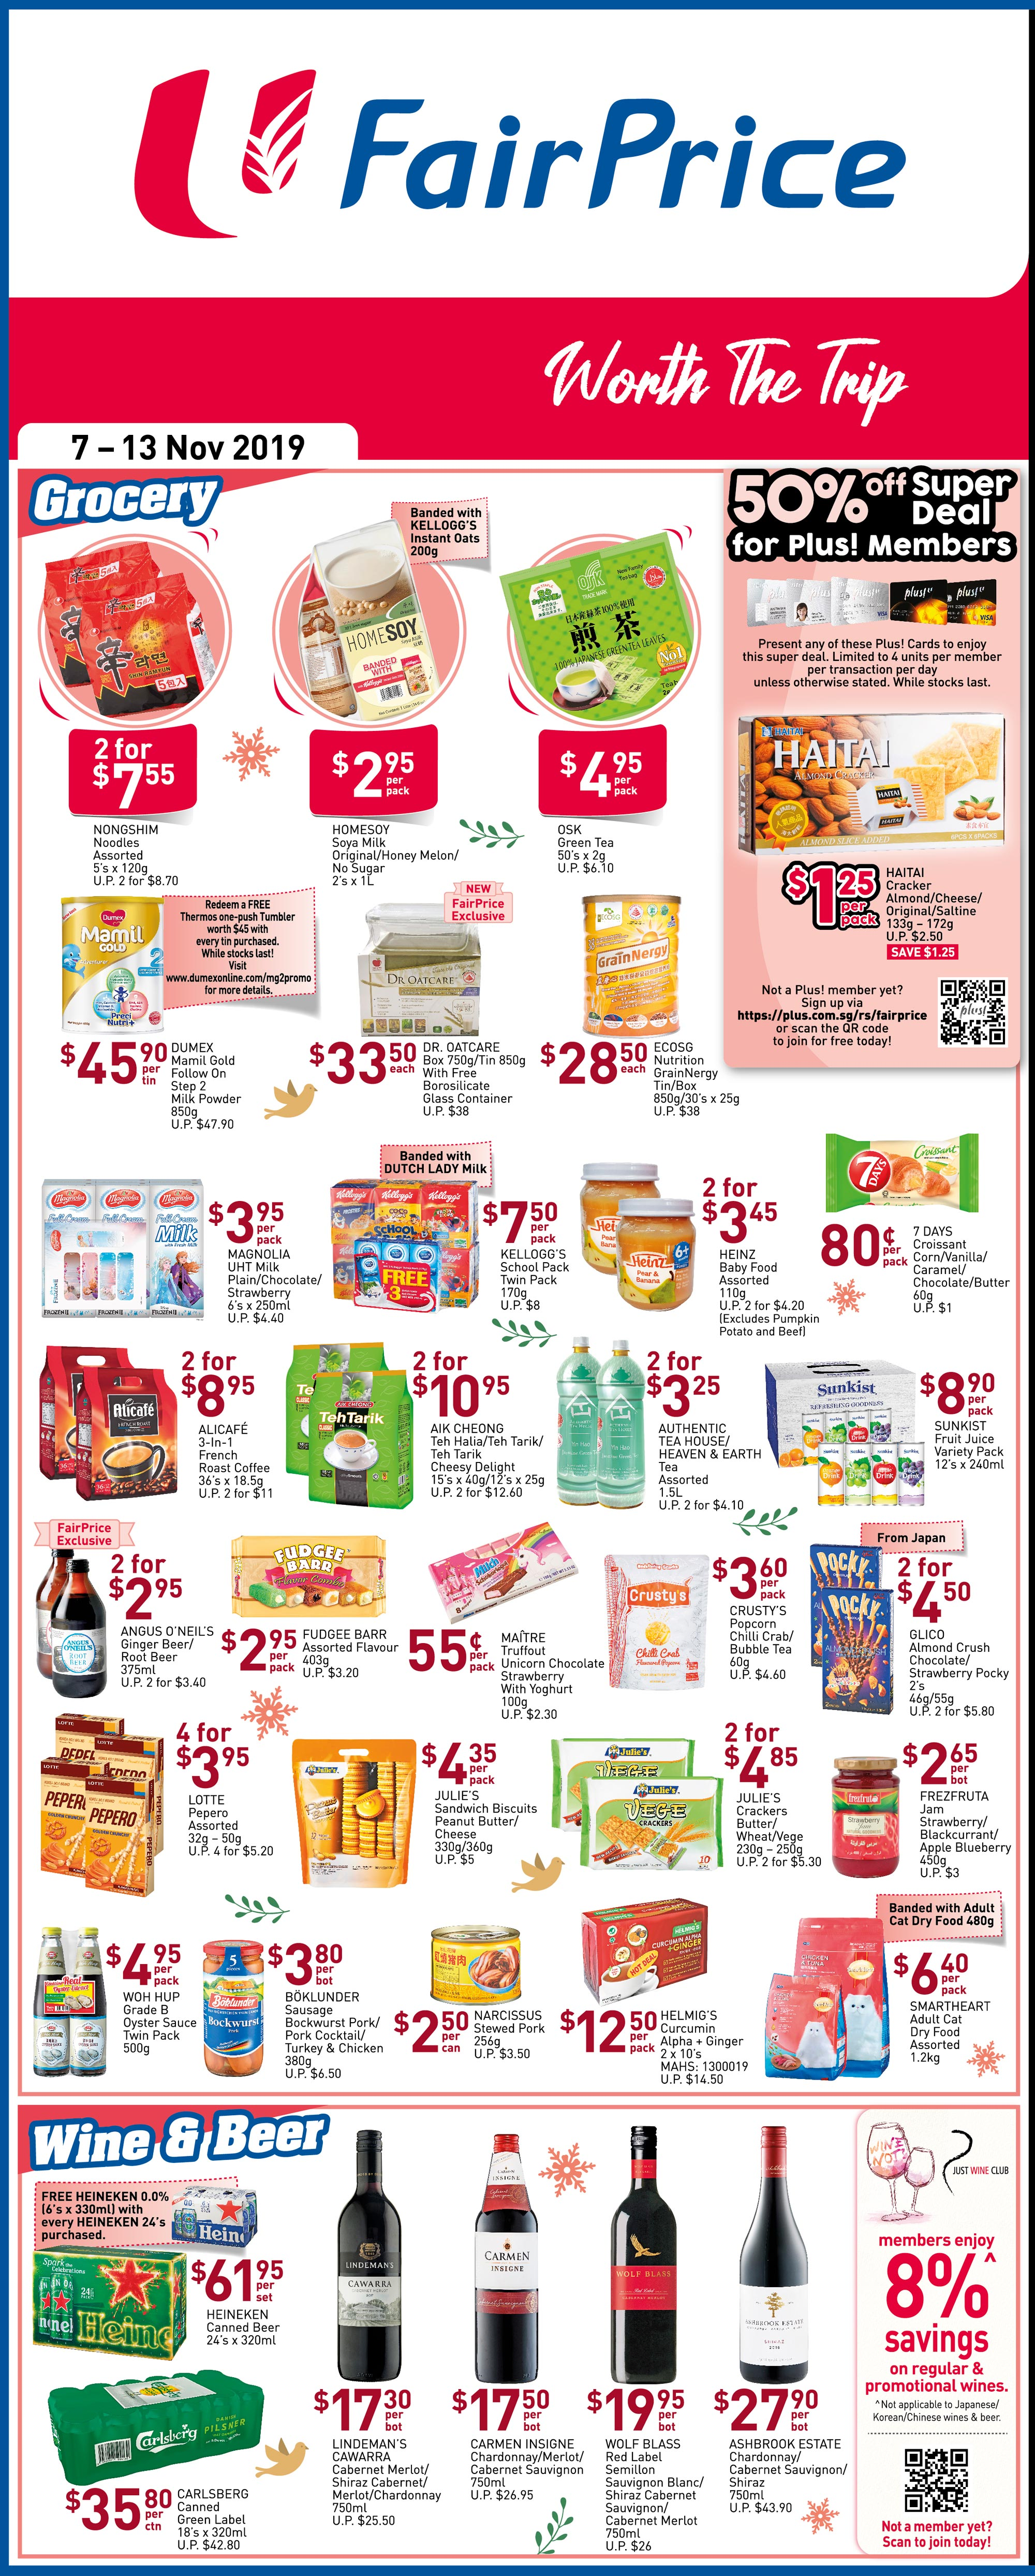 NTUC FairPrice Singapore Your Weekly Saver Promotions 7-13 Nov 2019   Why Not Deals 3 & Promotions